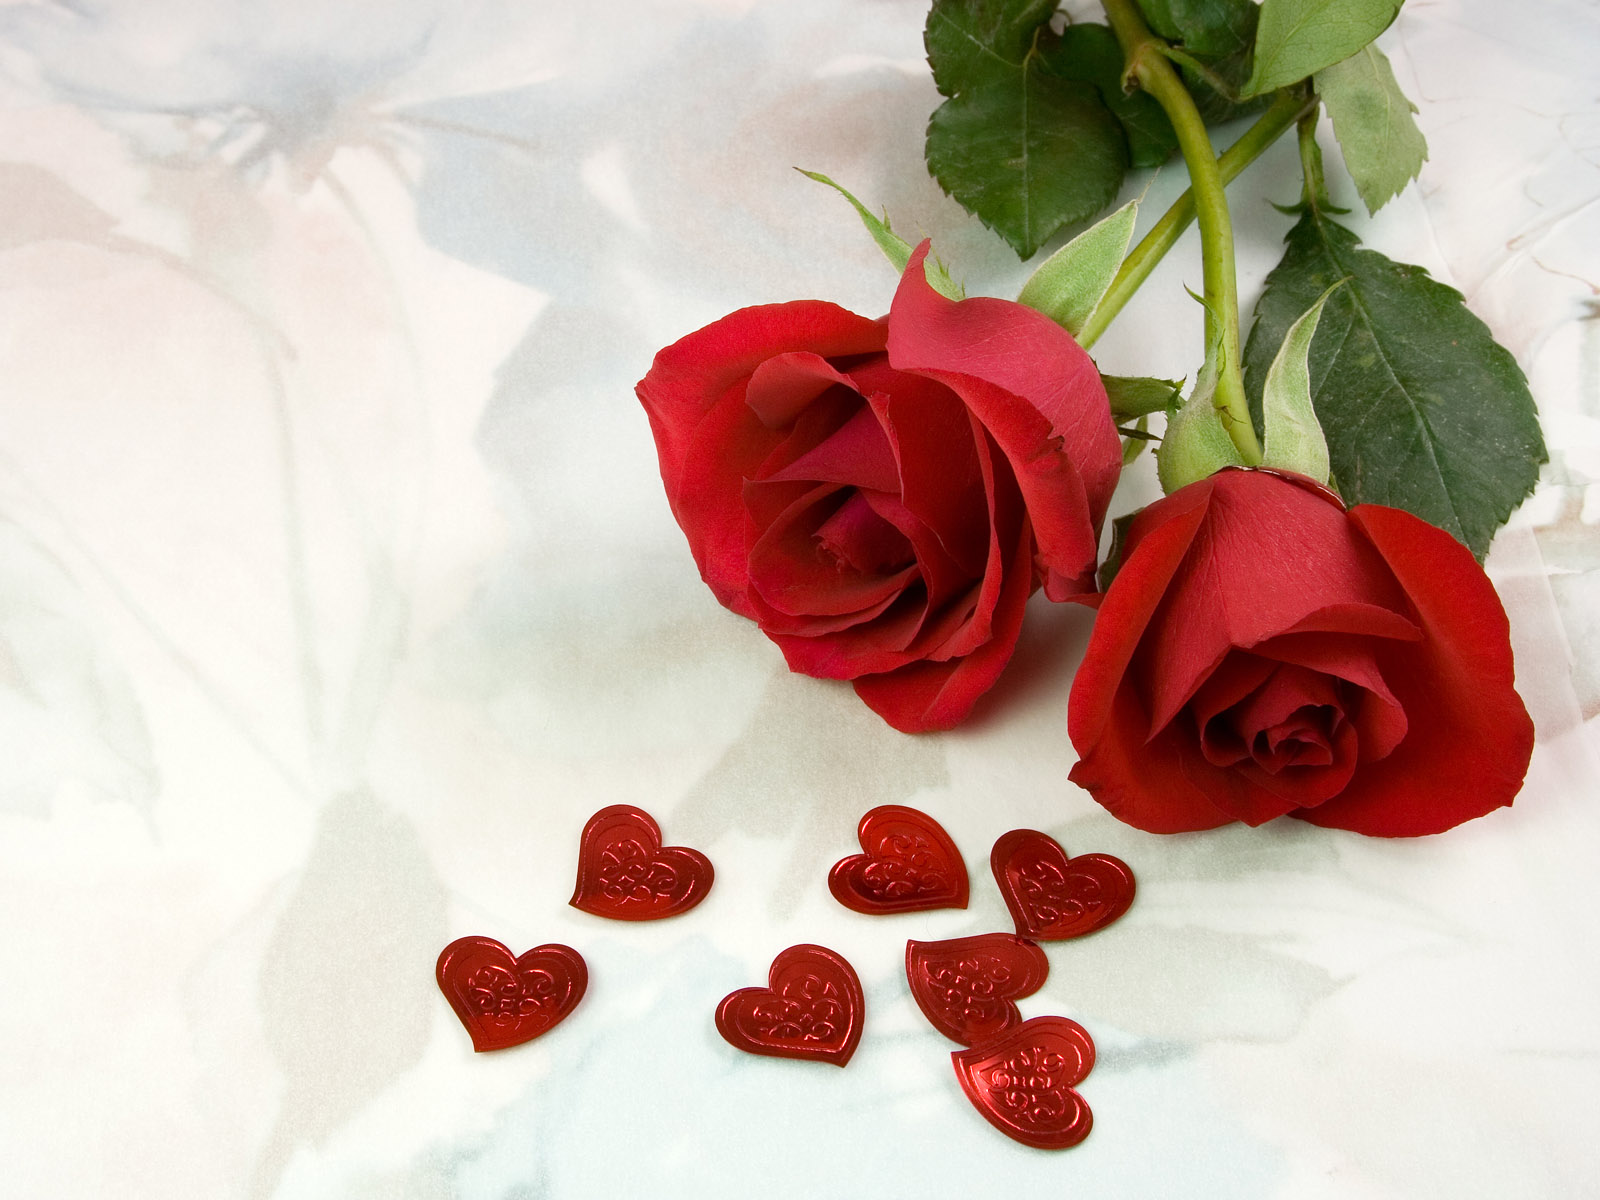 Beautiful Pictures Of Roses For Wallpaper Animaxwallpaper